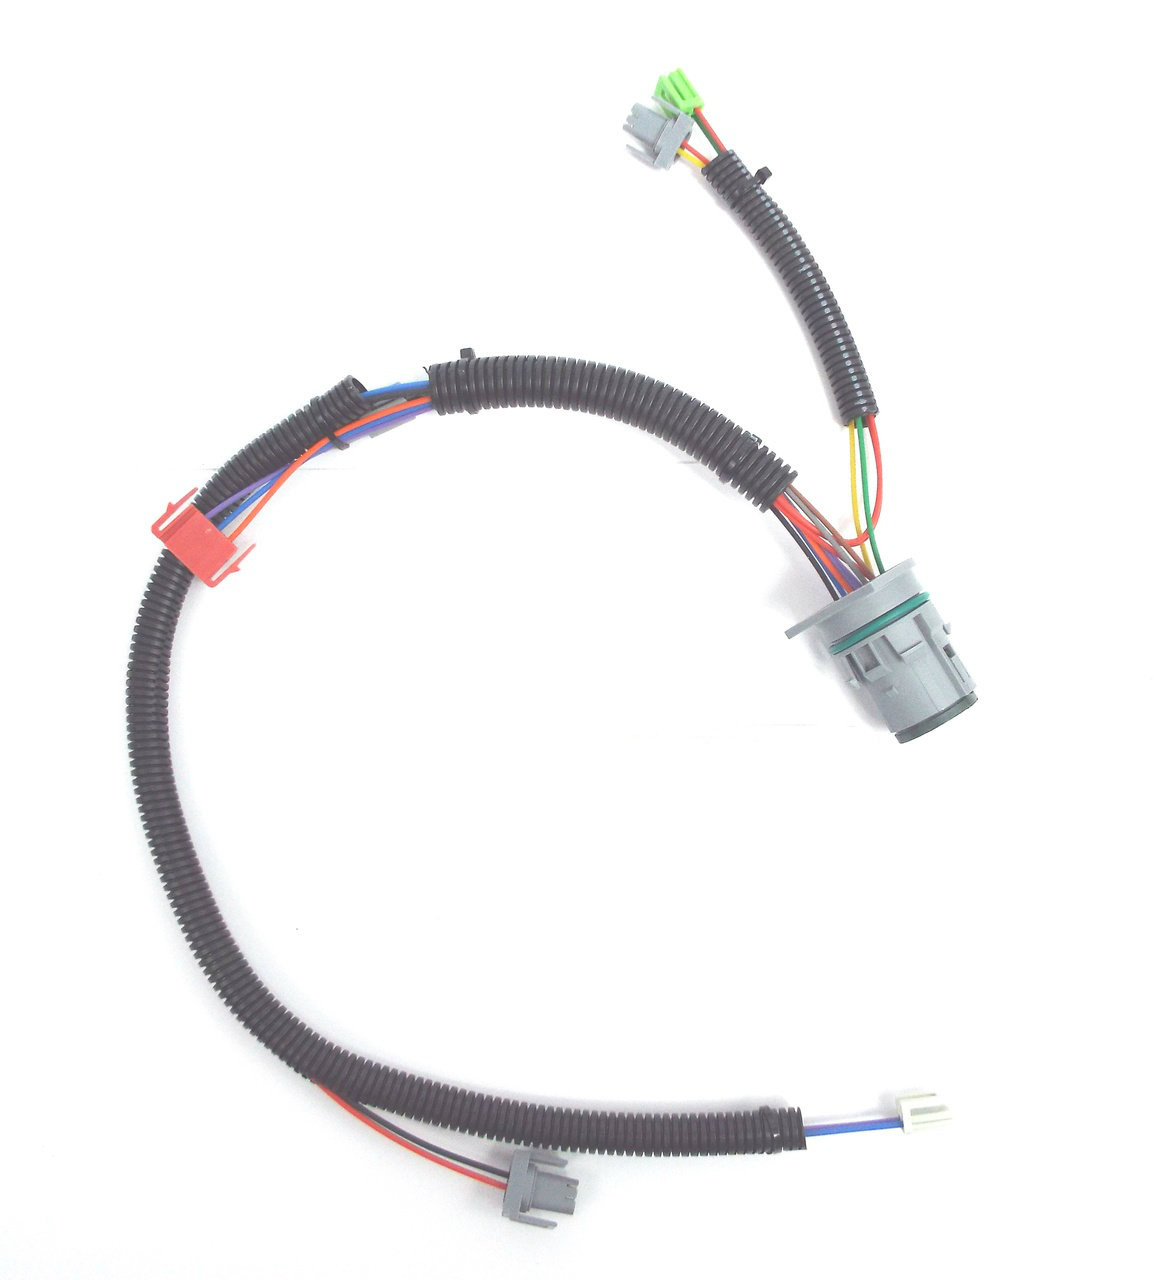 medium resolution of 4l80e internal wiring harness 2004 up 24200161 global4l80e wiring harness 2